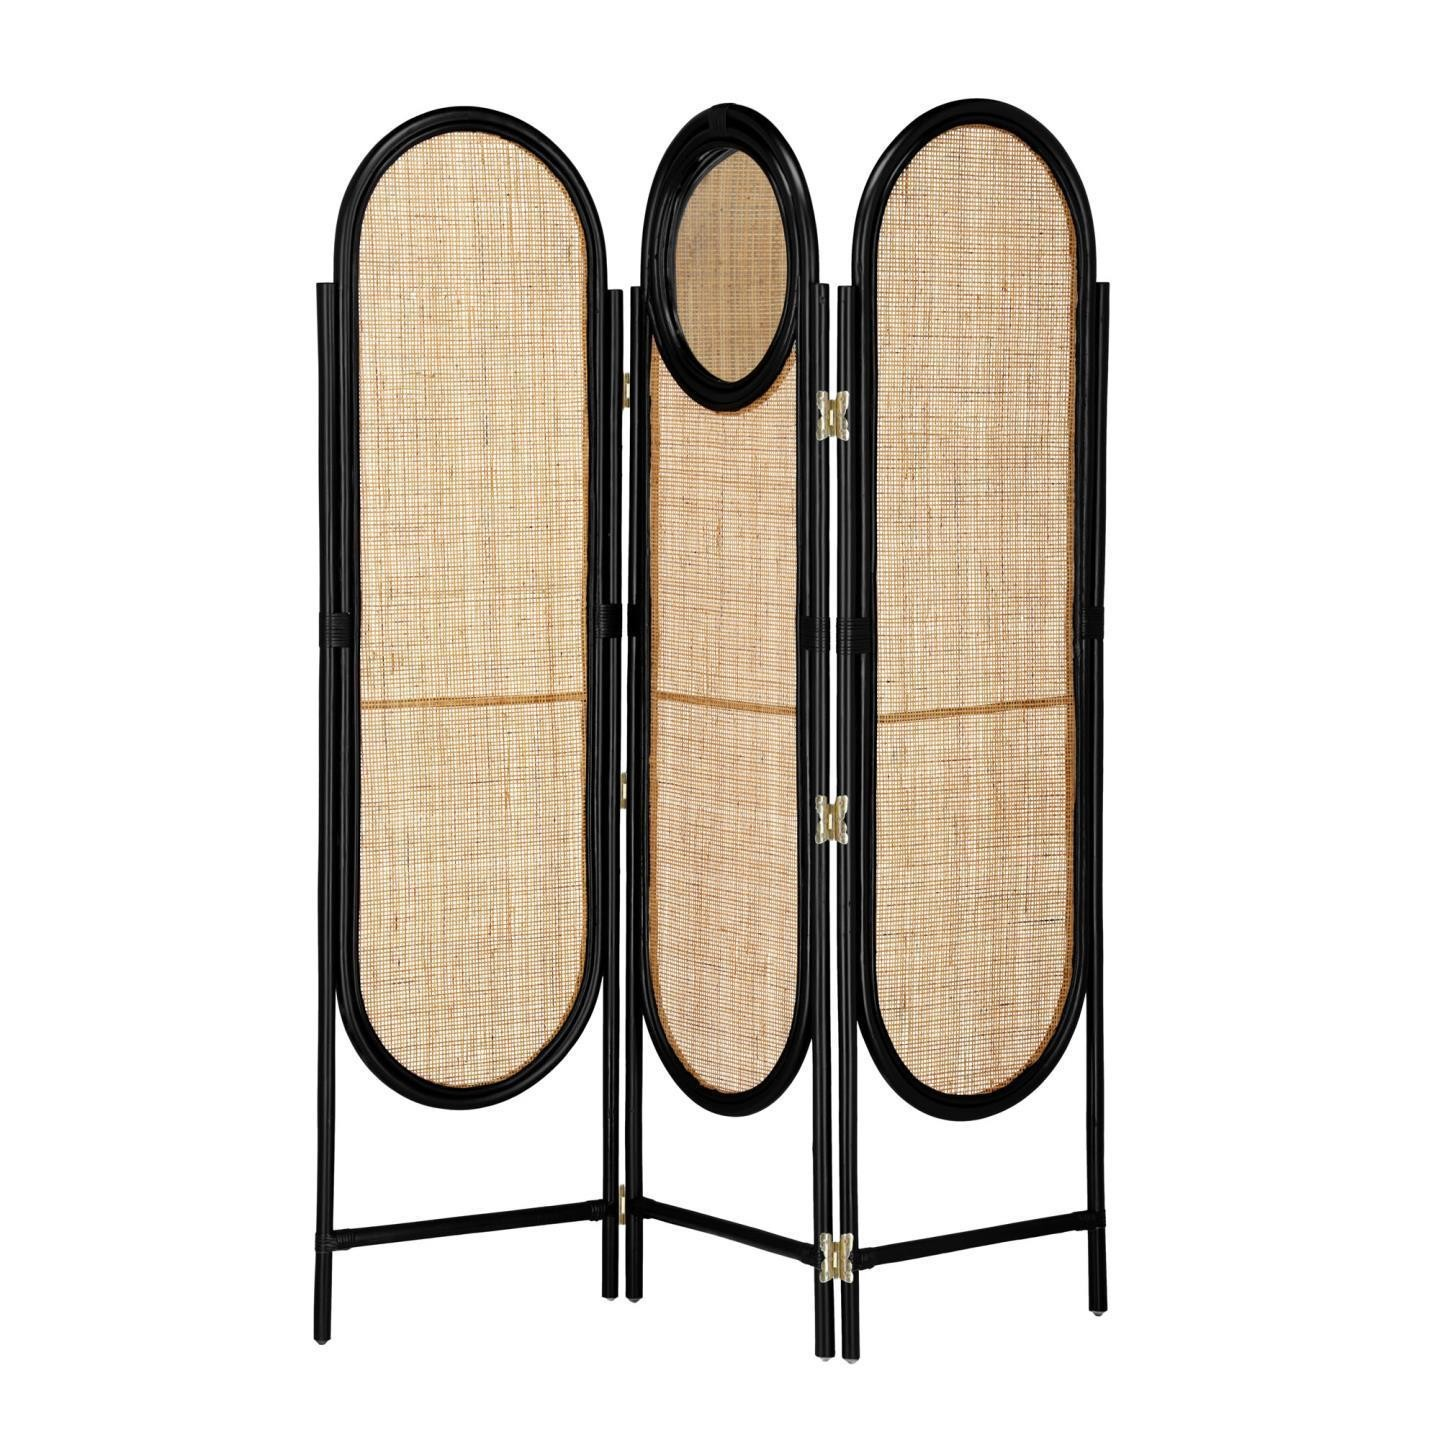 Otaki Handmade Bamboo Rattan Screen / Room Divider with Mirror, Black